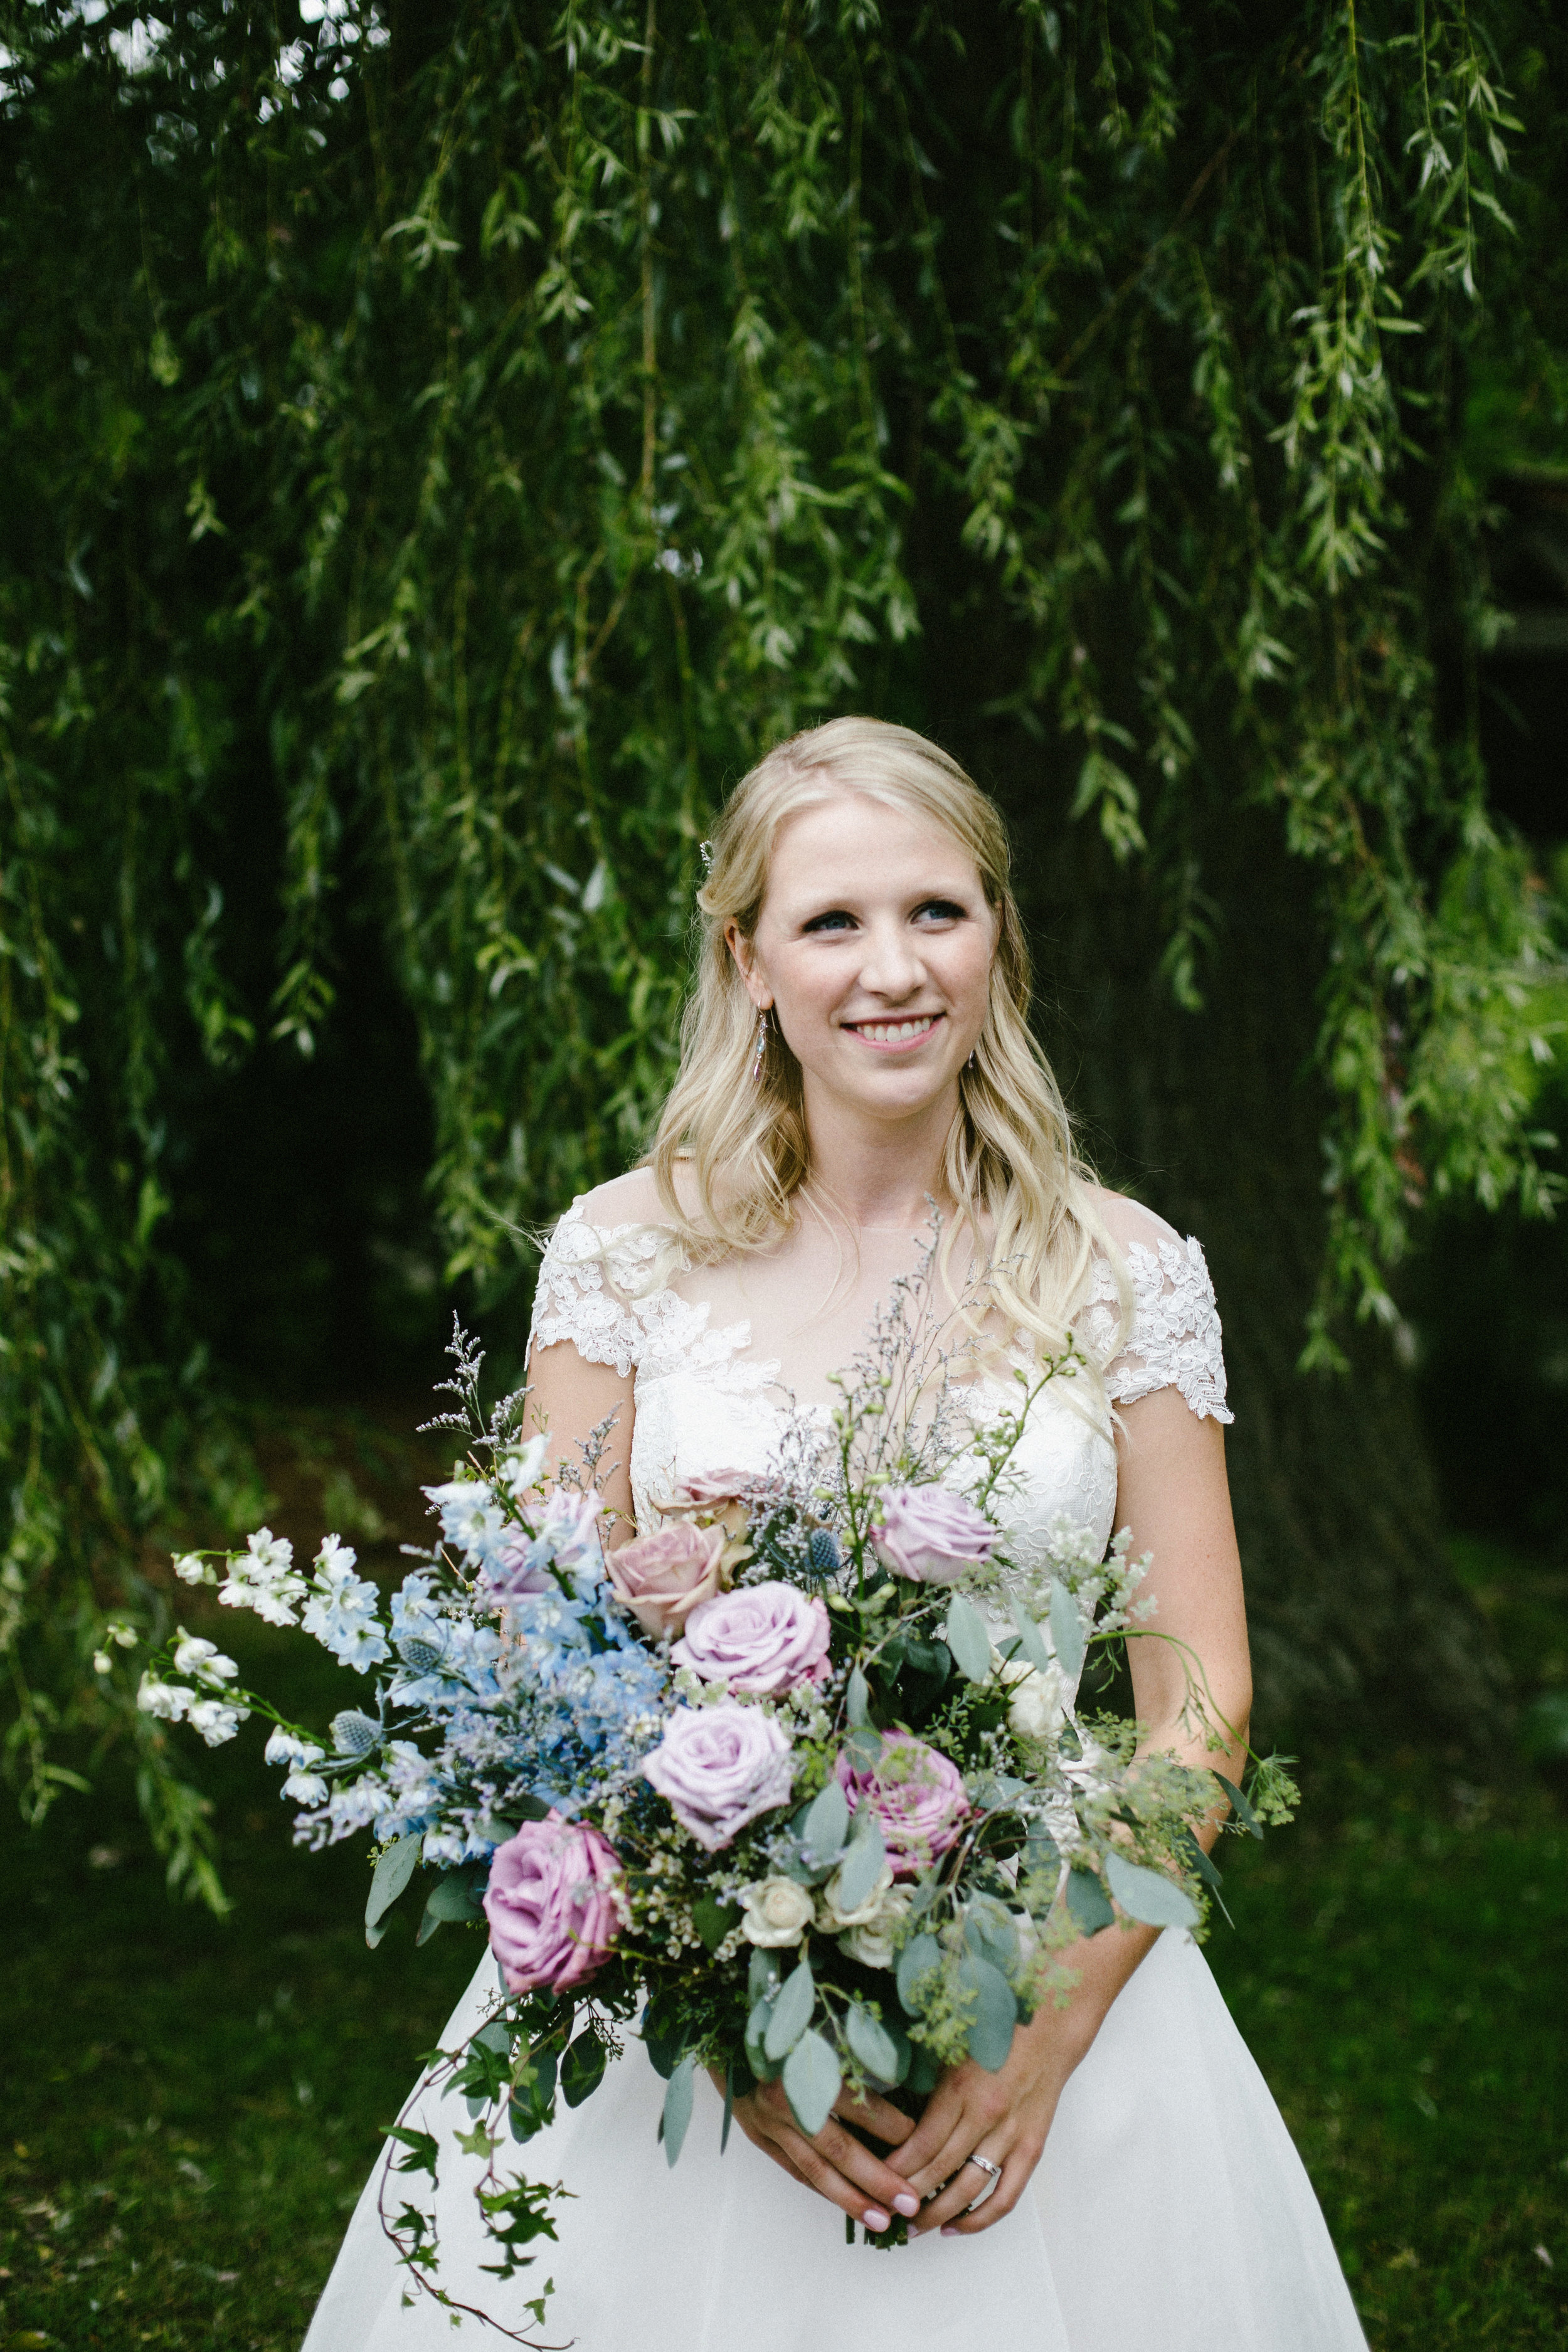 Bride and Bouquet Photo